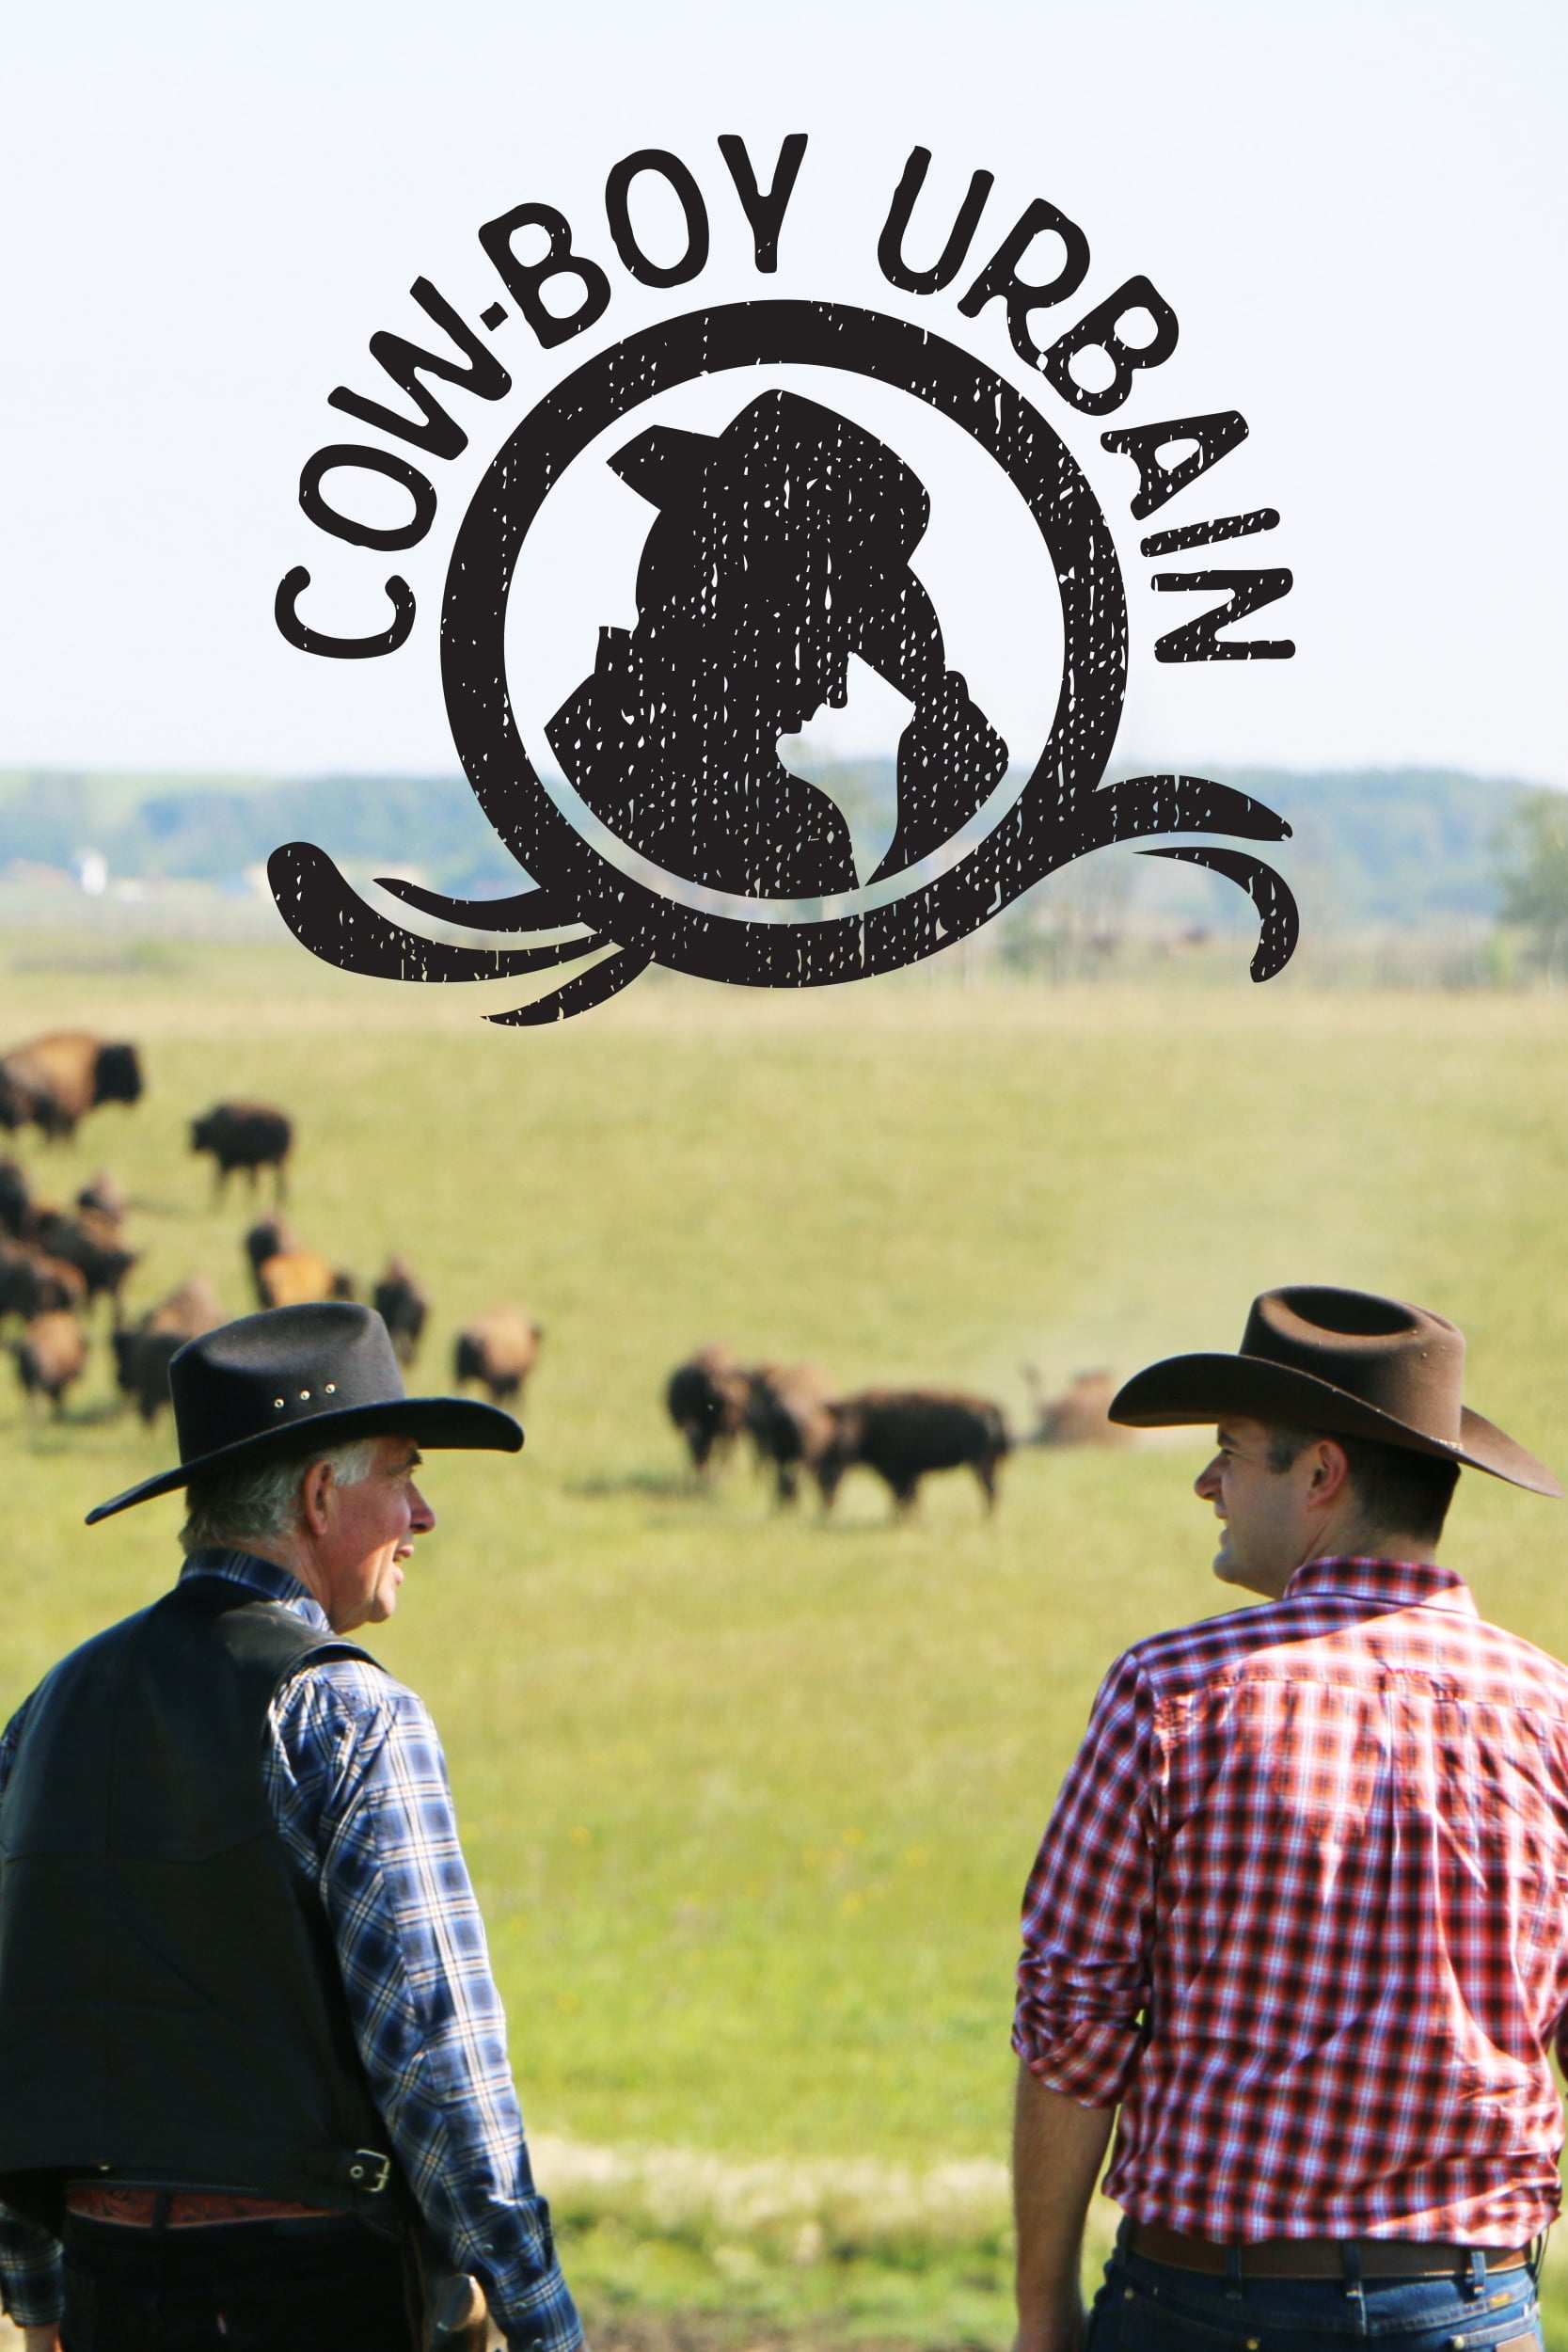 Cow-boy urbain TV Shows About Western